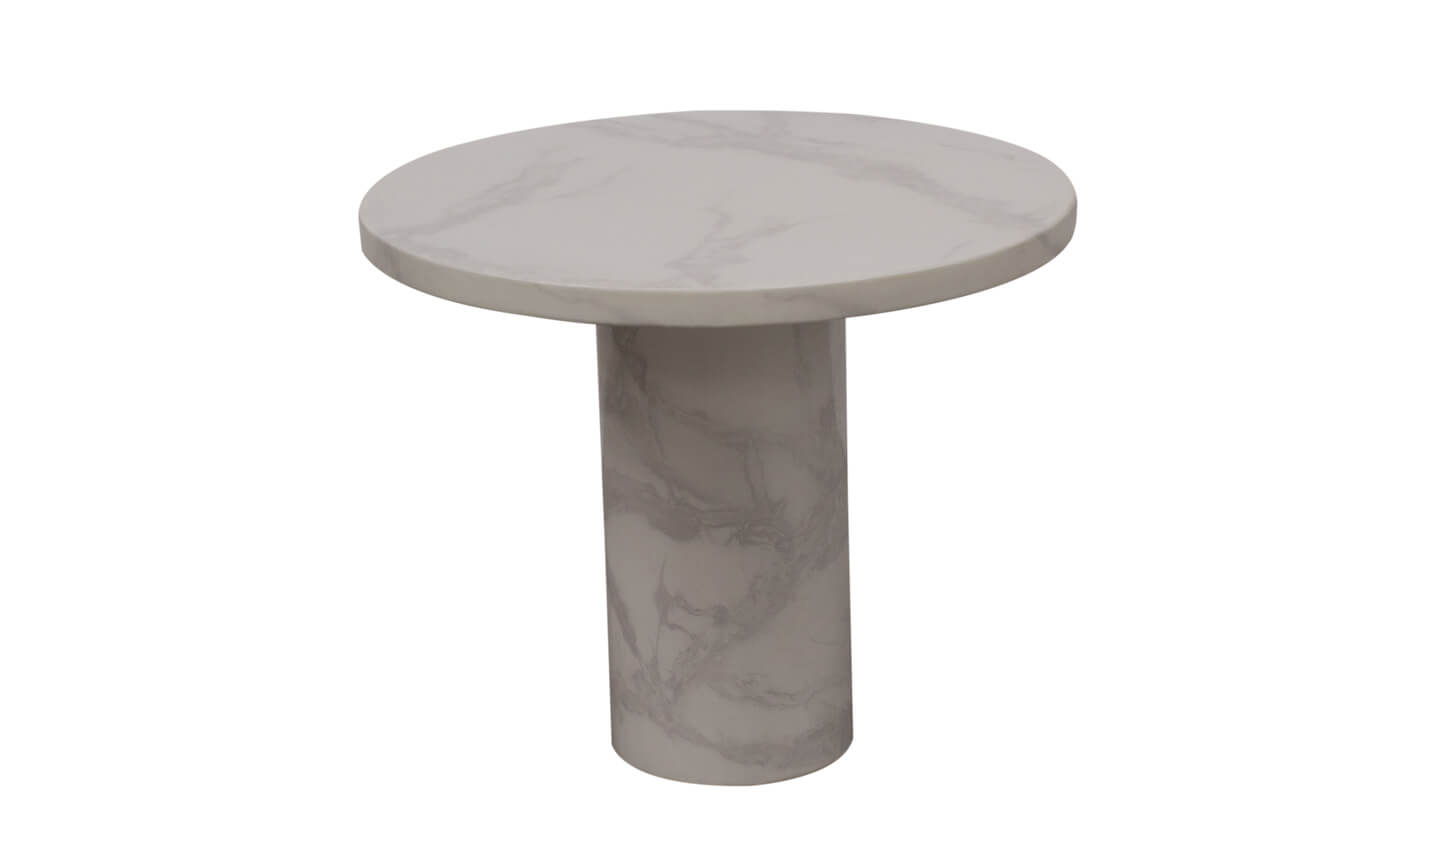 Carra Round Lamp Table